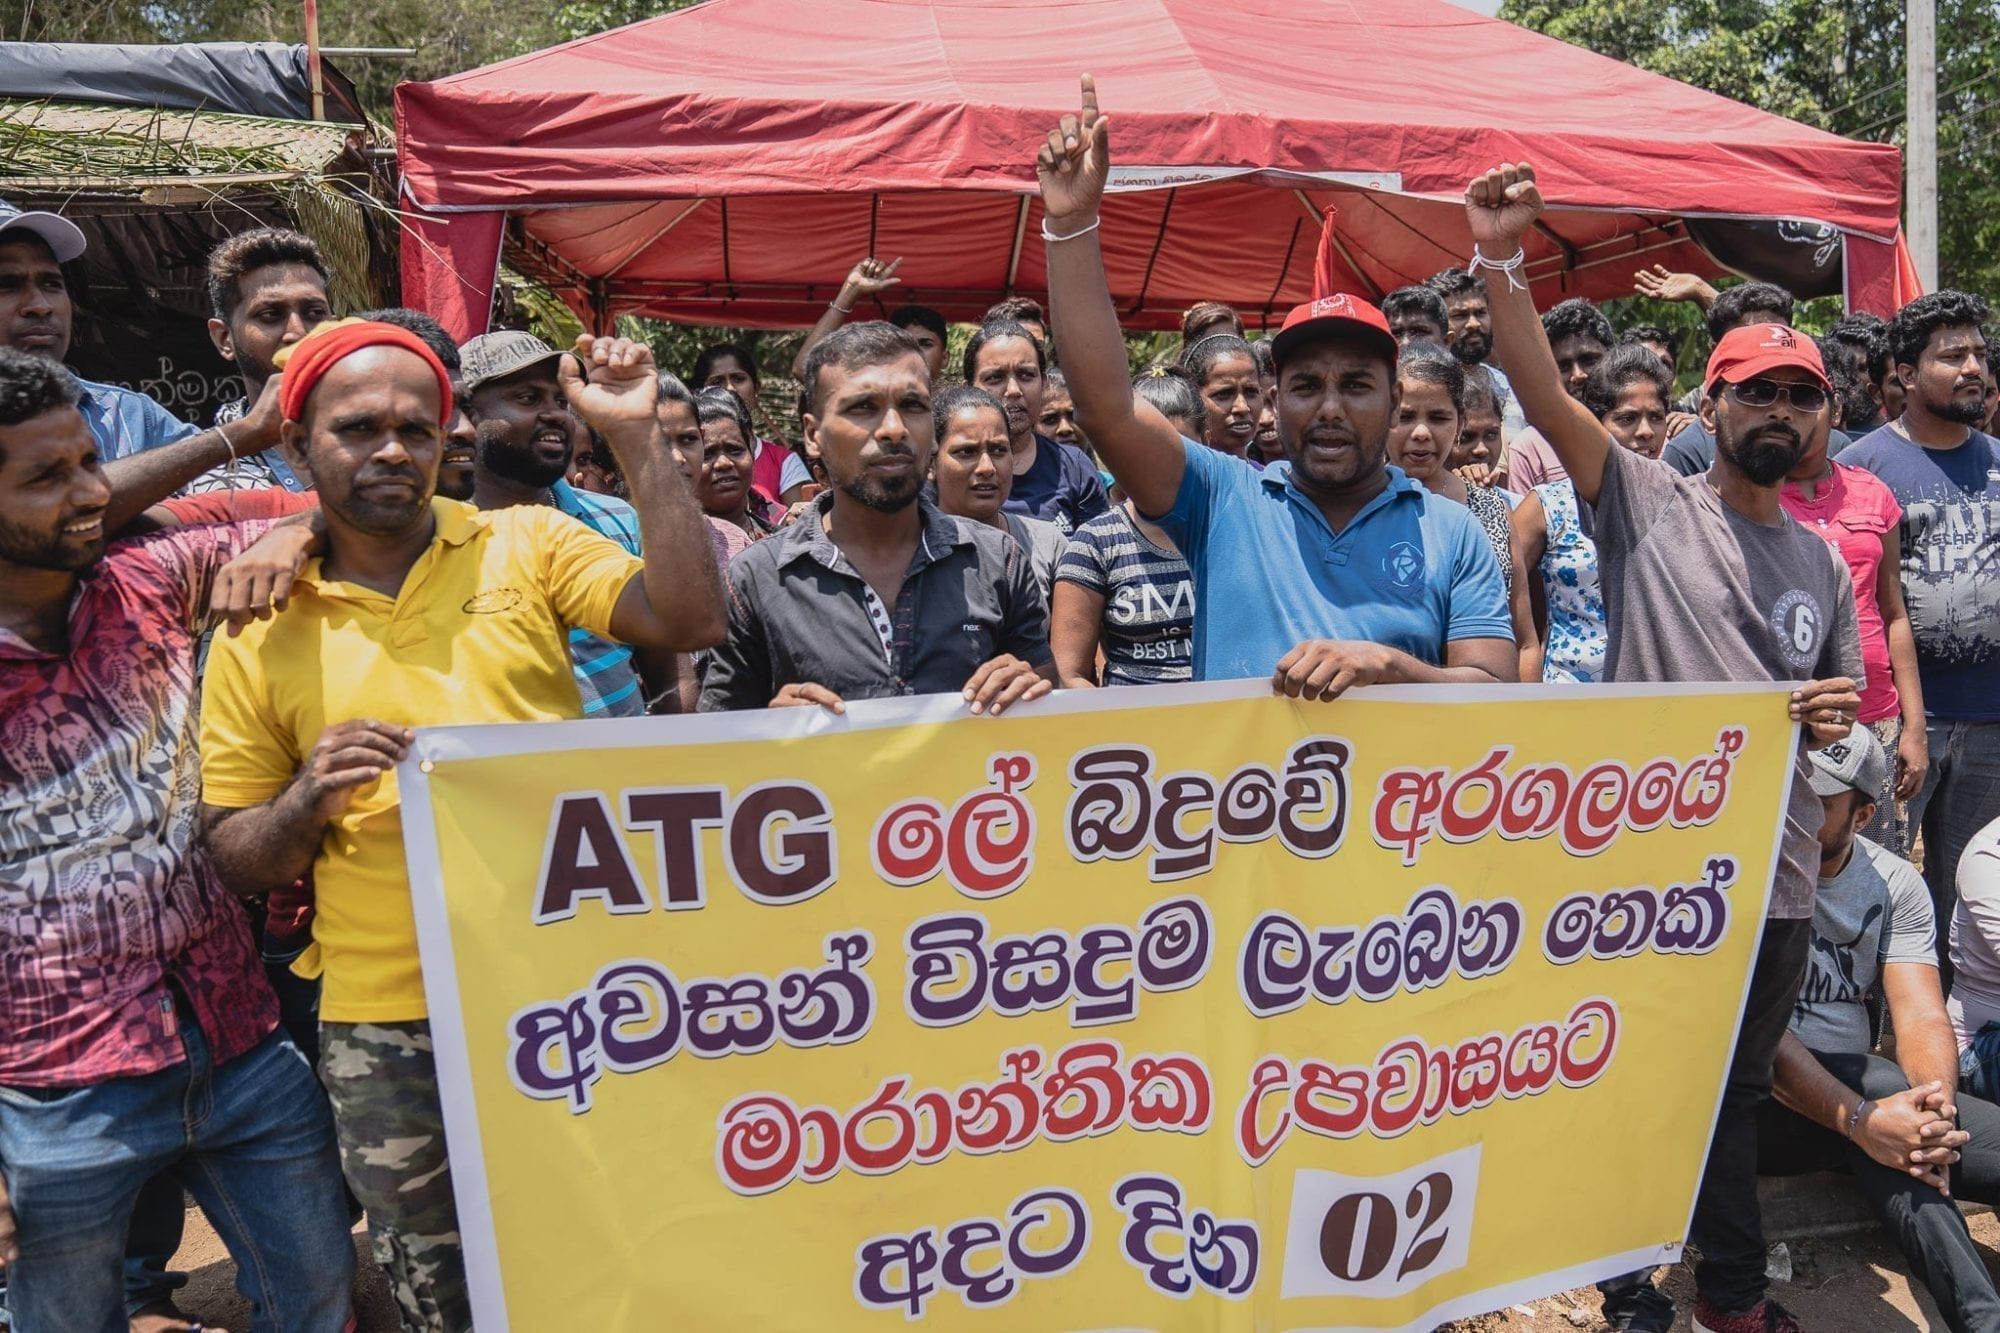 Sri Lanka Workers Wage Hunger Strike for Justice at Work